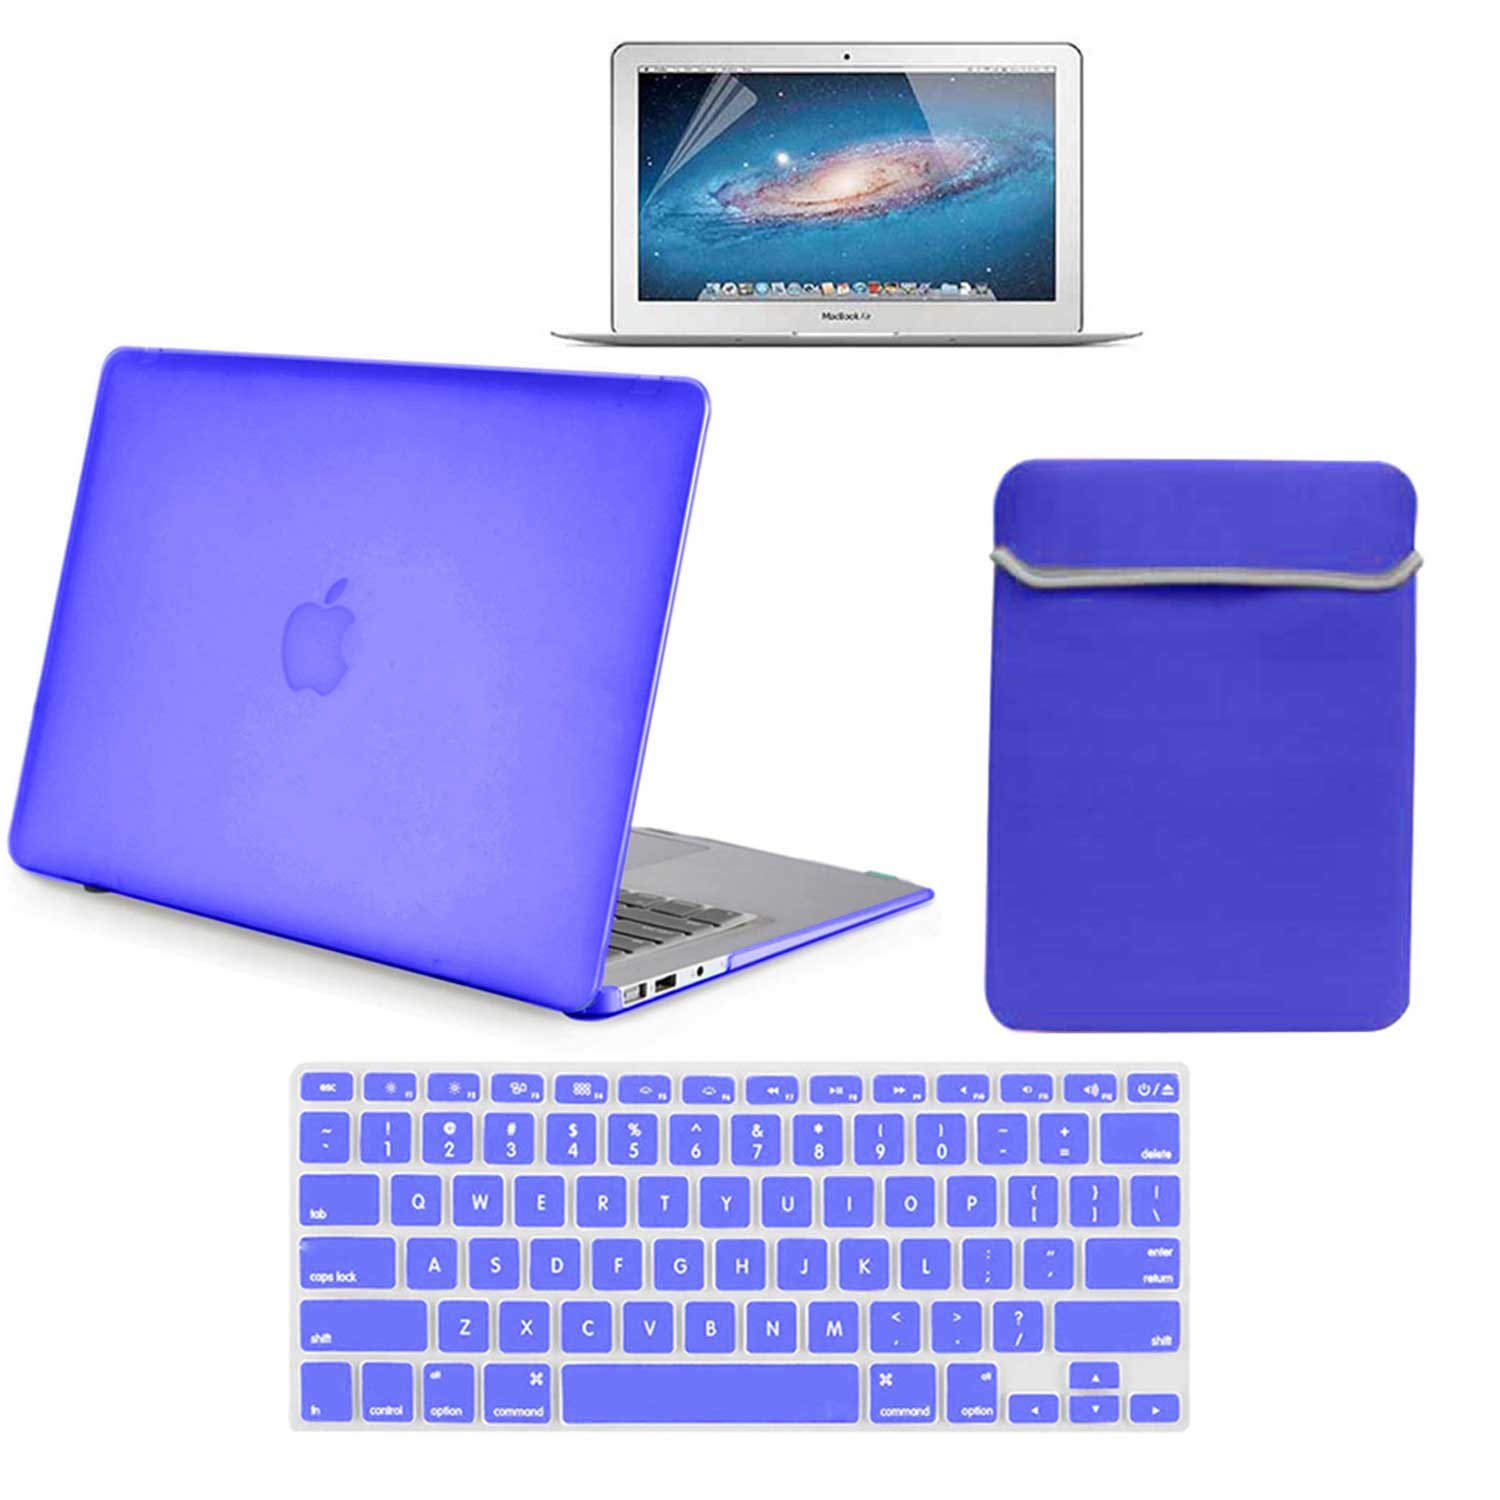 Pack of 20 Rubberrized Hard Plastic Case Cover Sleeve Cover Keyboard Skin Screen Protector for MacBook Air 13'' A1369/A1466 - Royal Blue